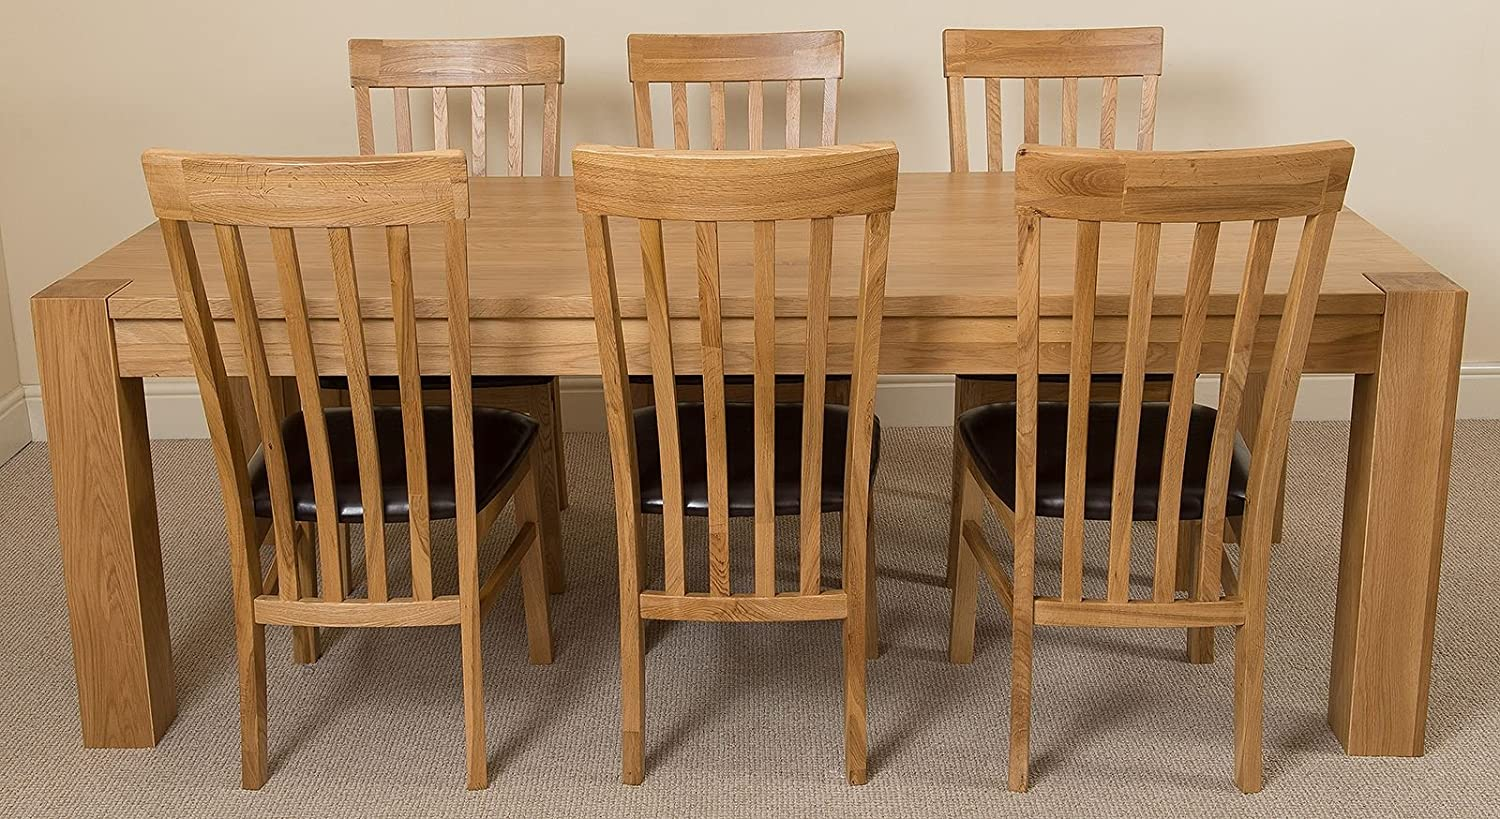 7ft Chunky Solid Oak Dining Table And 6 Chairs 220 X 100 Cm Large Oak Dining